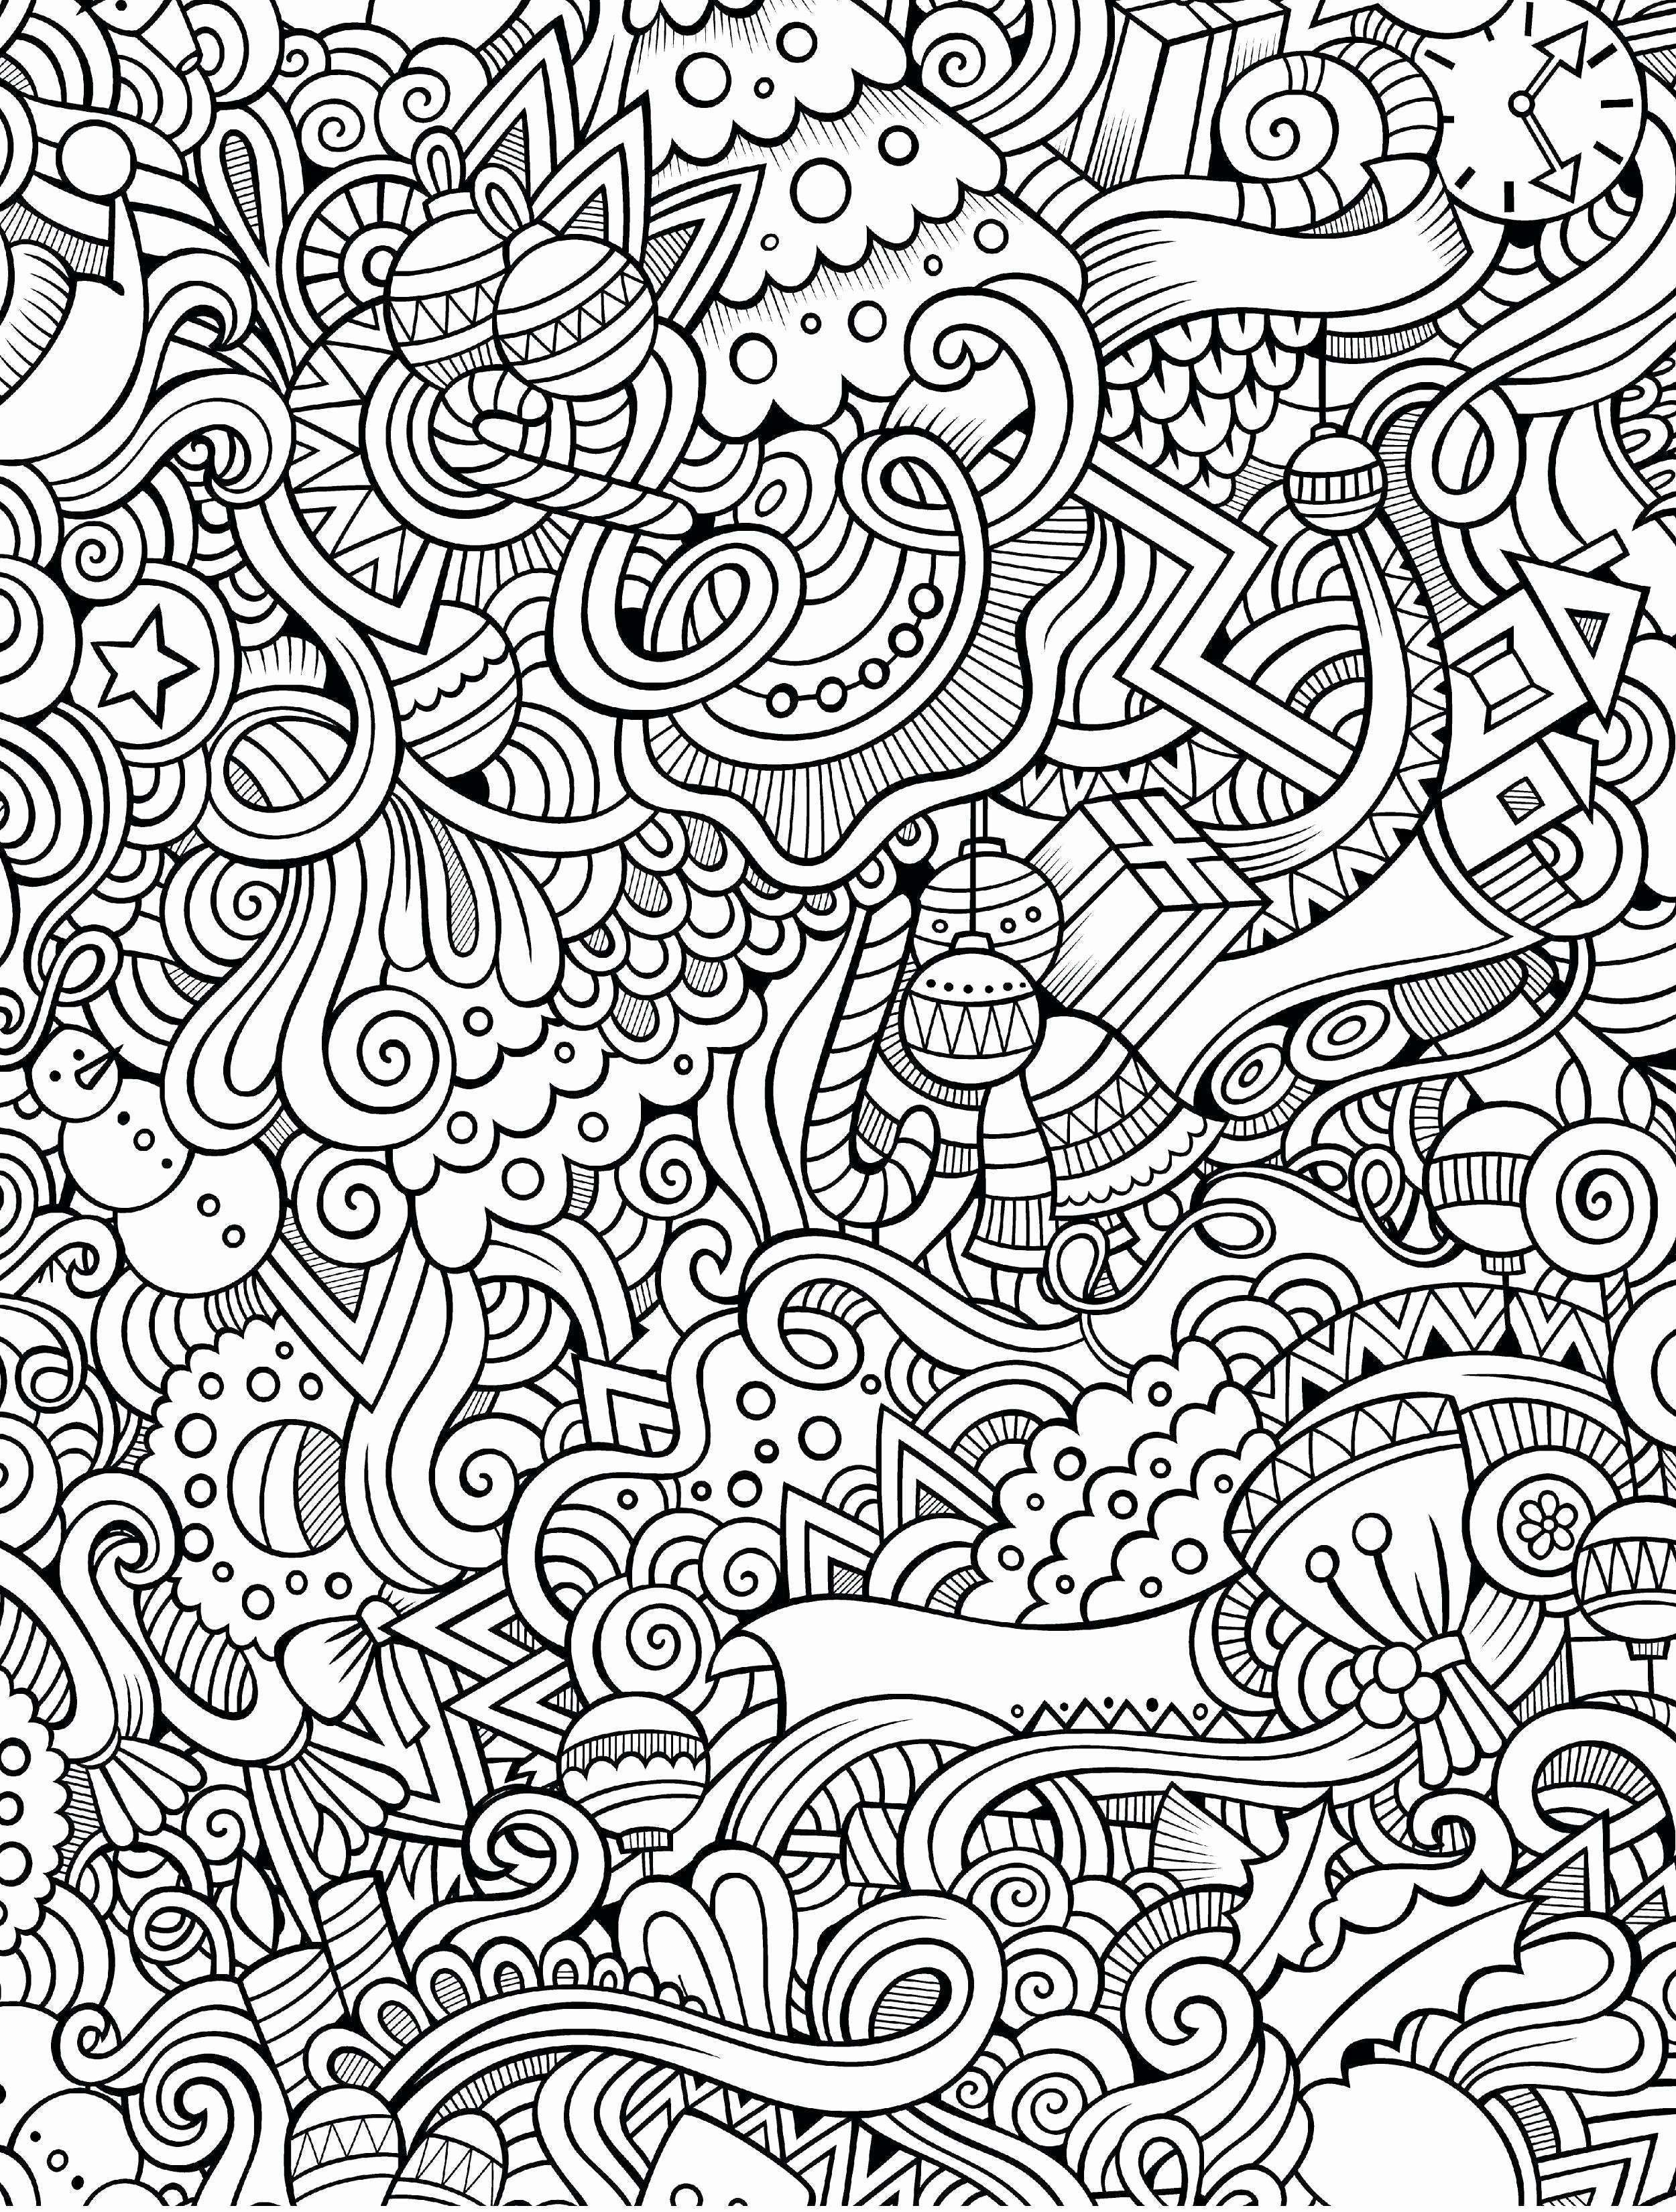 43 Free Christmas Doodle Coloring Pages